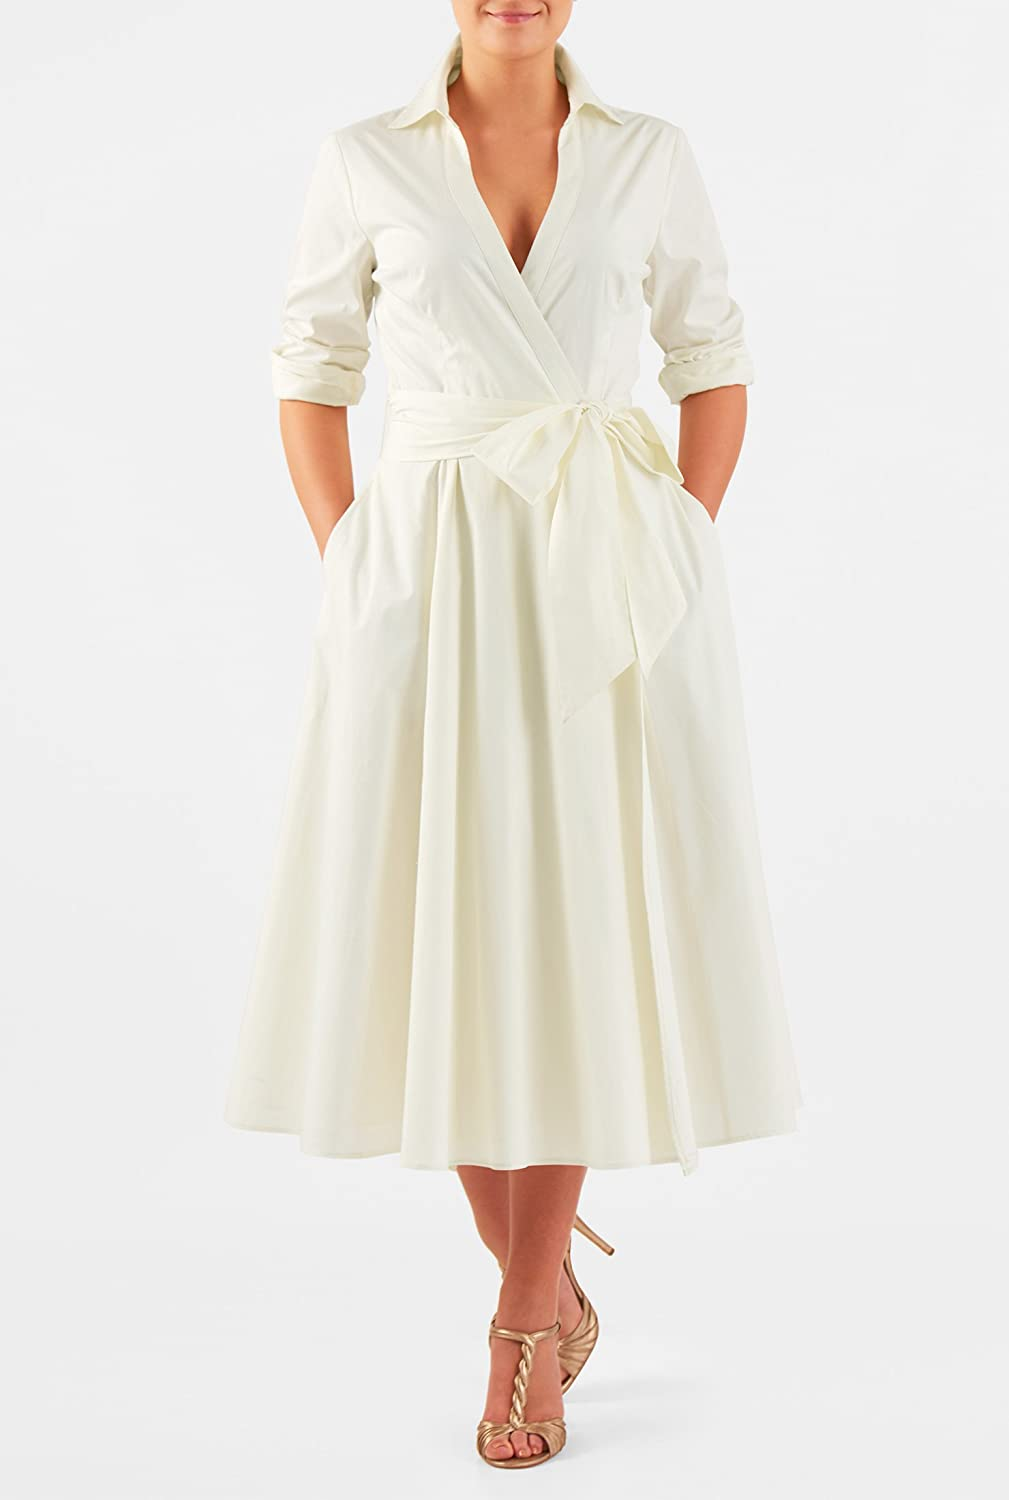 1950s Style Wedding Dresses eShakti Womens Cotton poplin sash tie wrap dress $52.95 AT vintagedancer.com